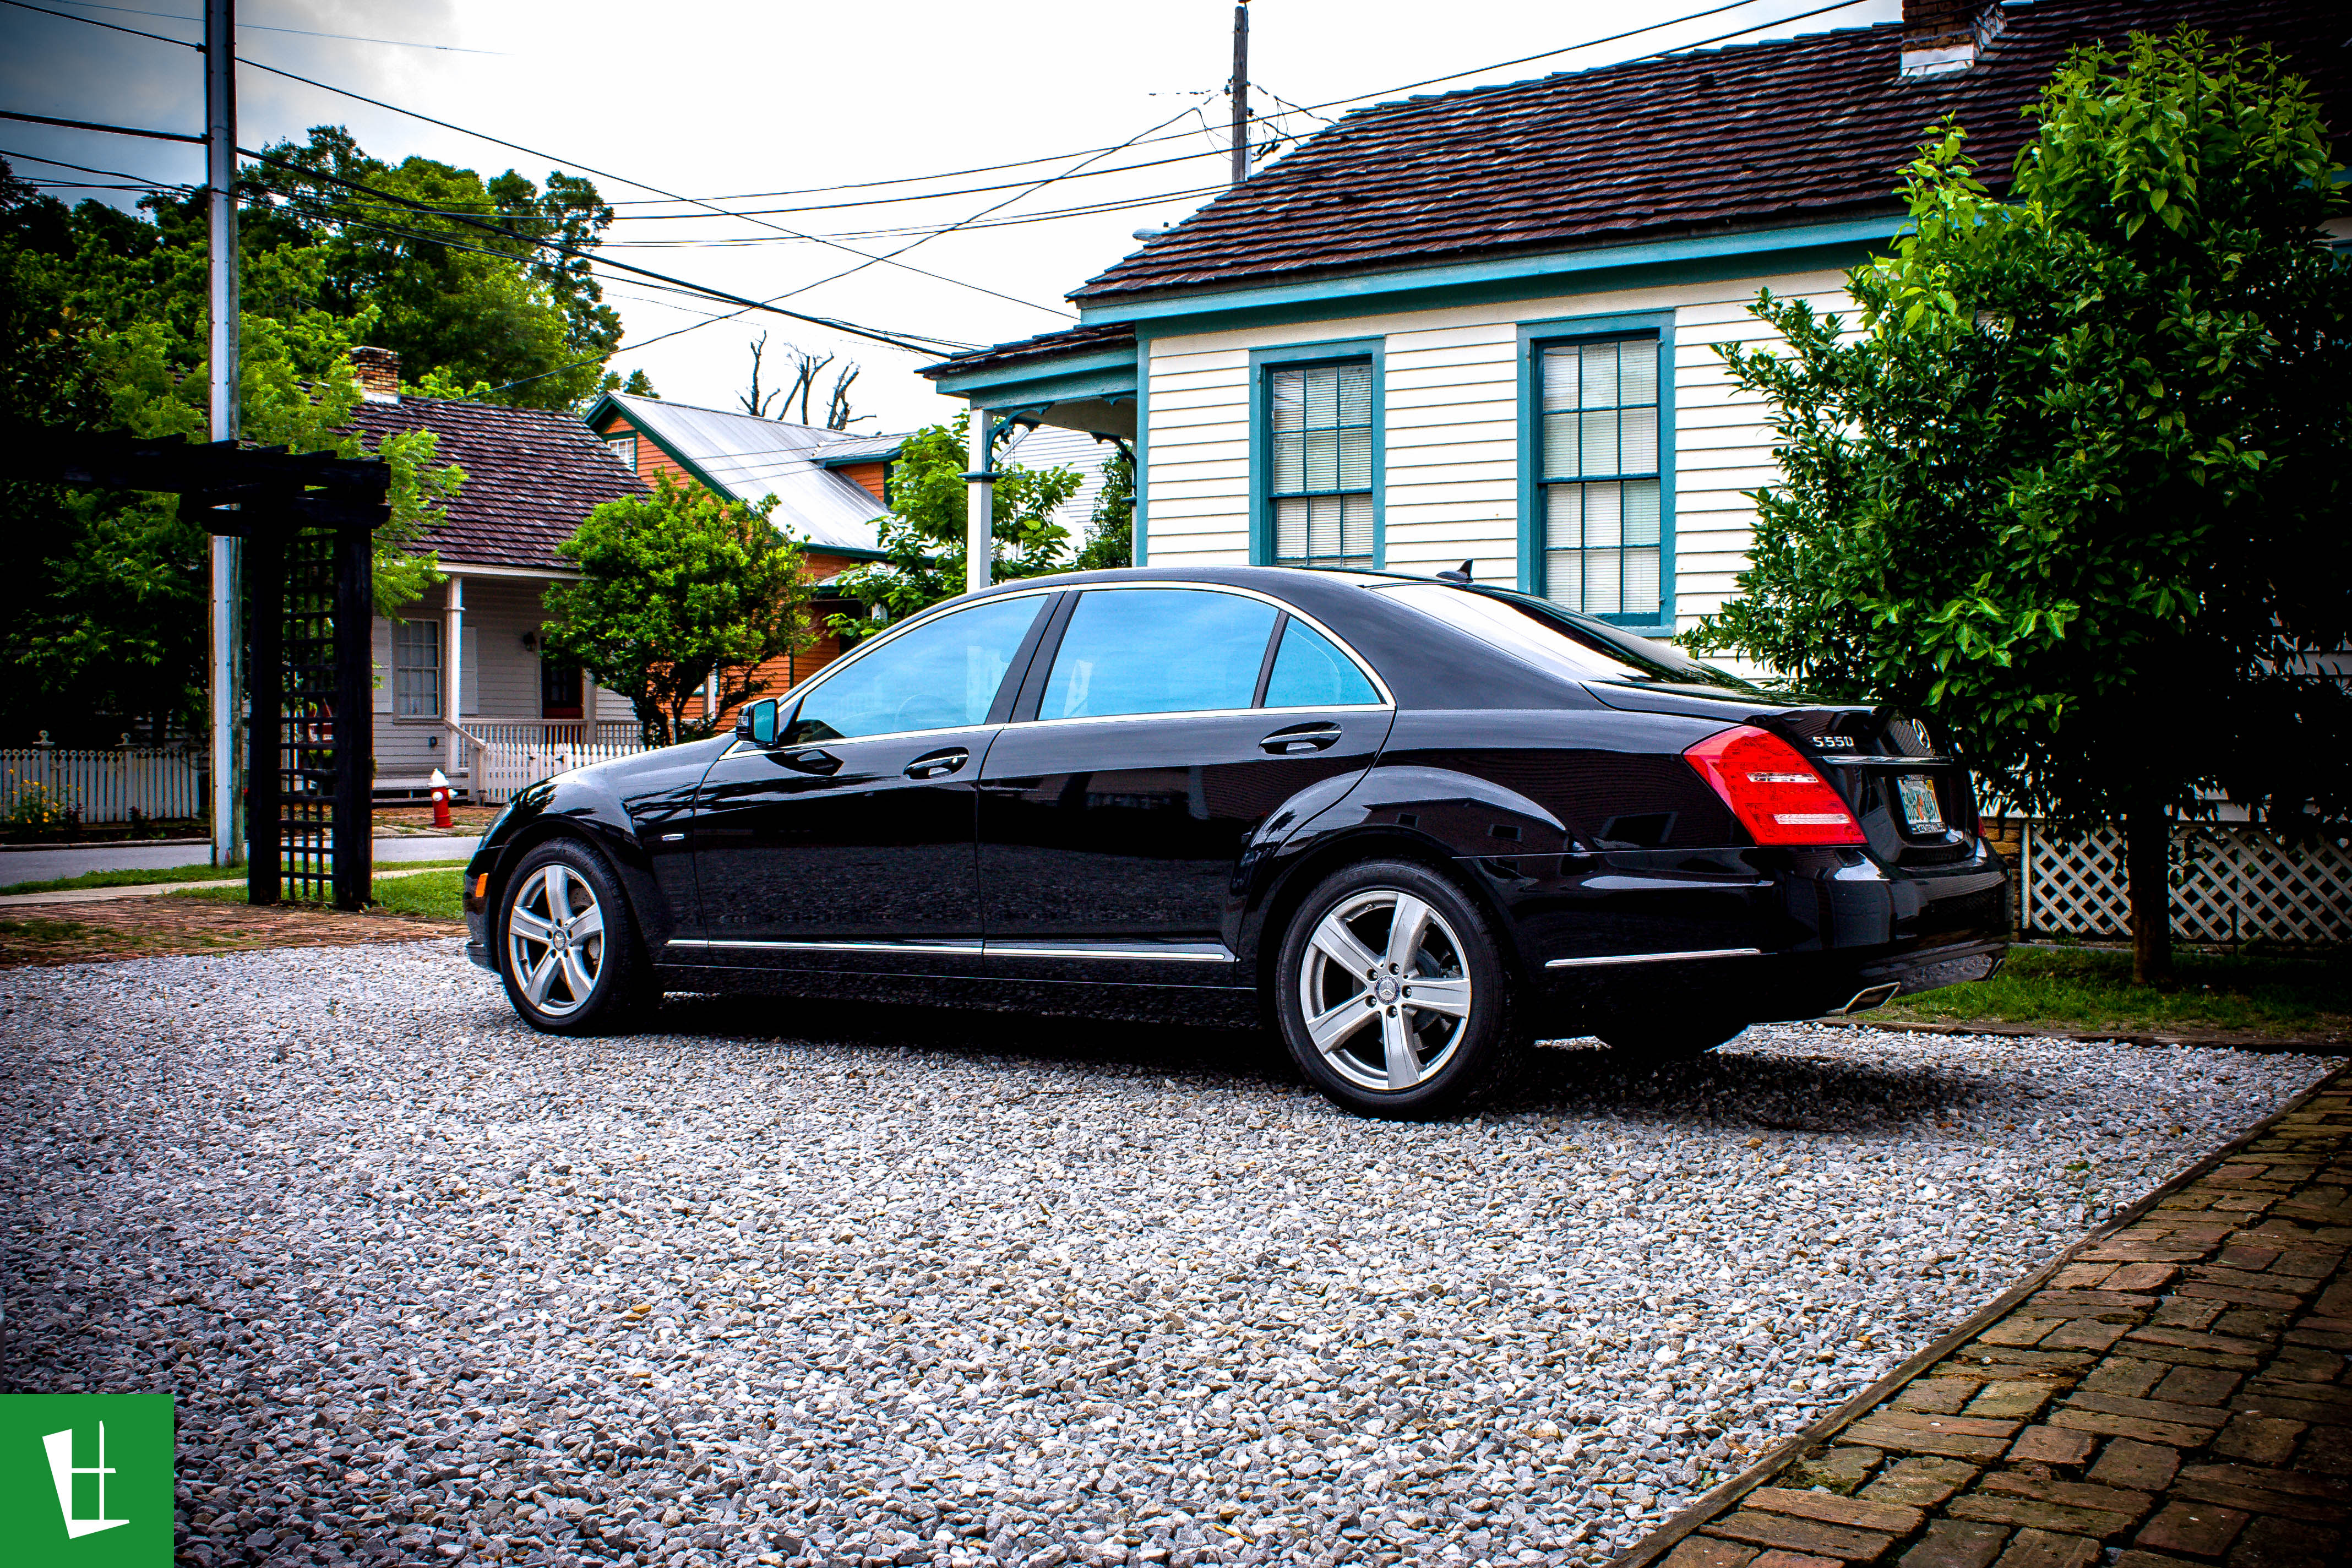 youtube by test watch roadflytv drive benz with emme mercedes review maxresdefault car hall